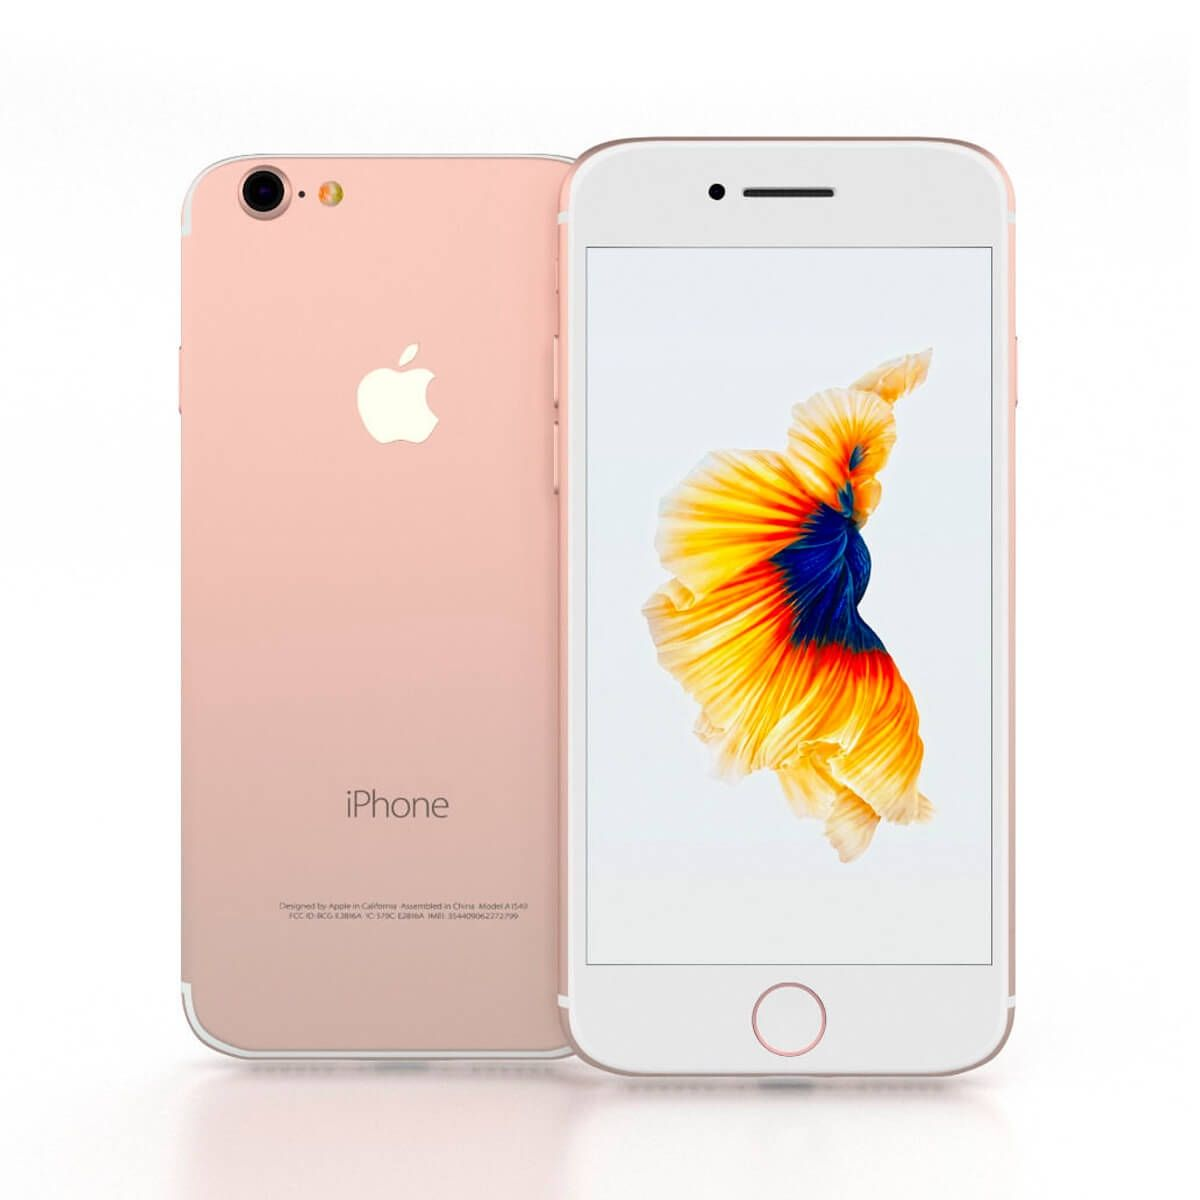 iphone 7 gold iphone 7 plus caracteristicas y especificaciones 11531